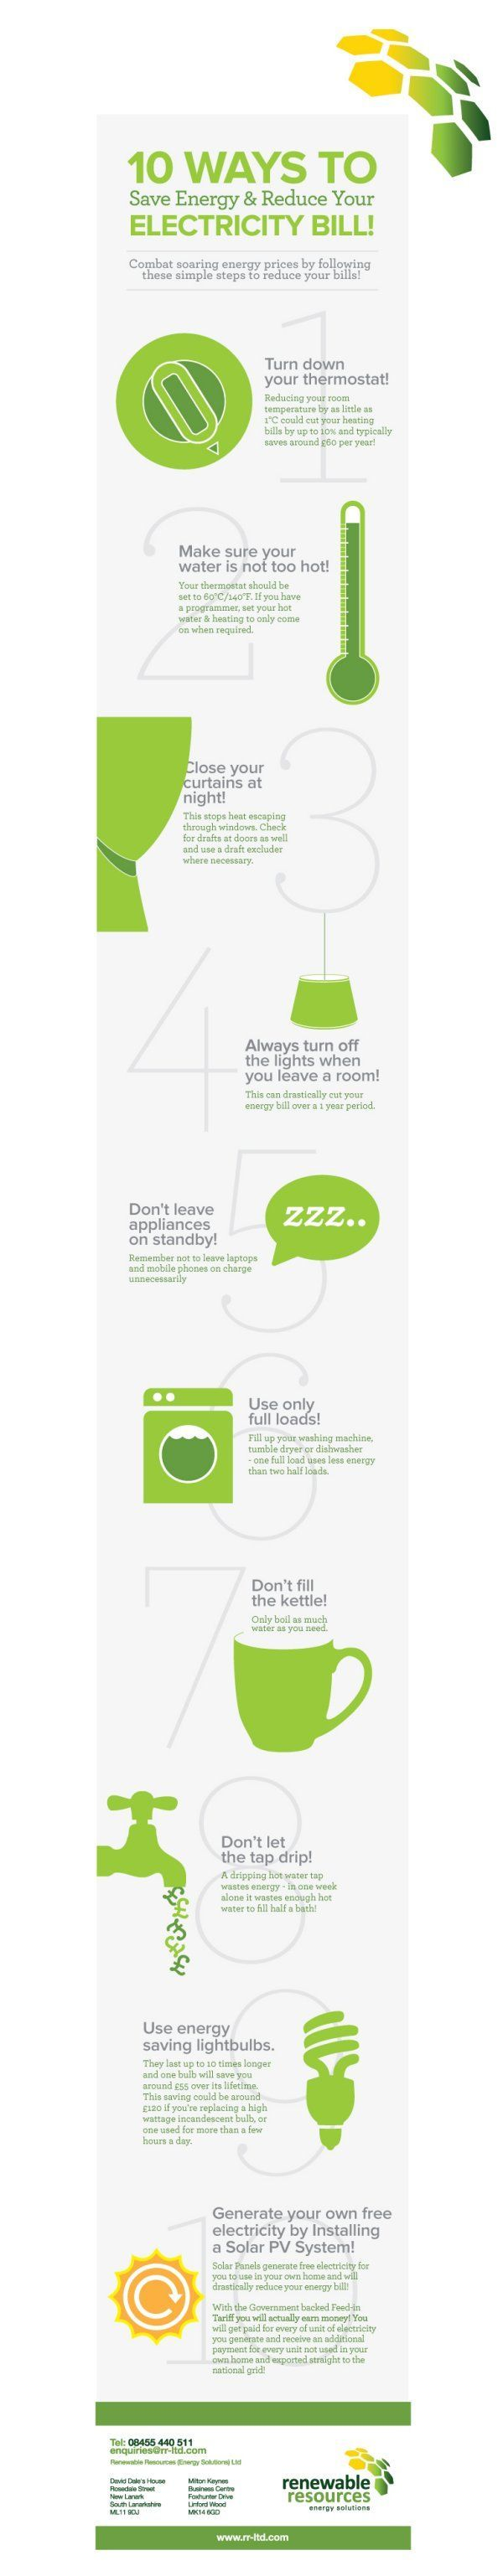 "How to Save on Your Energy Bill [Infographic] Call me frugal, but I love cutting that bill down ""by any means necessary"" ;) lol"